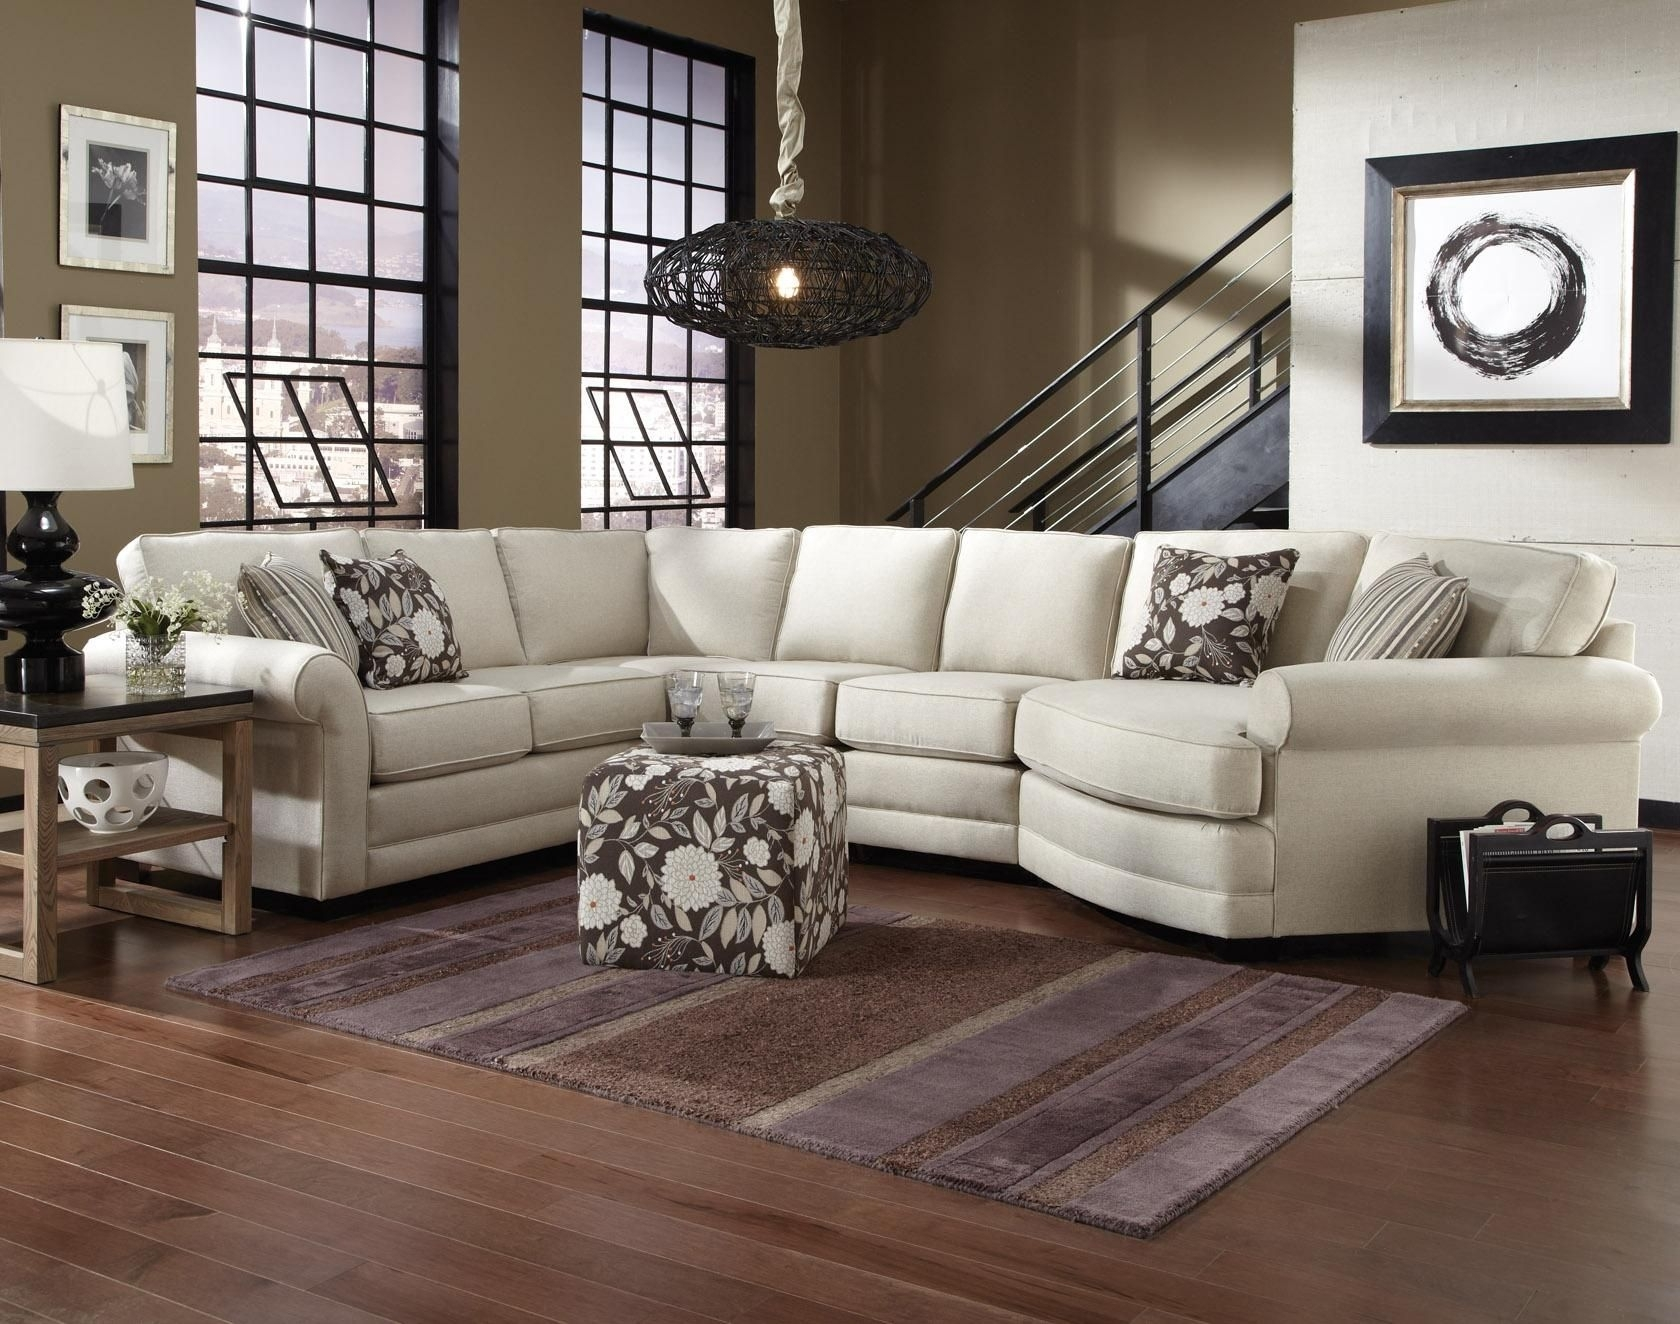 Brantley 5 Seat Sectional Sofa With Cuddlerengland | Living With Kansas City Mo Sectional Sofas (View 6 of 10)